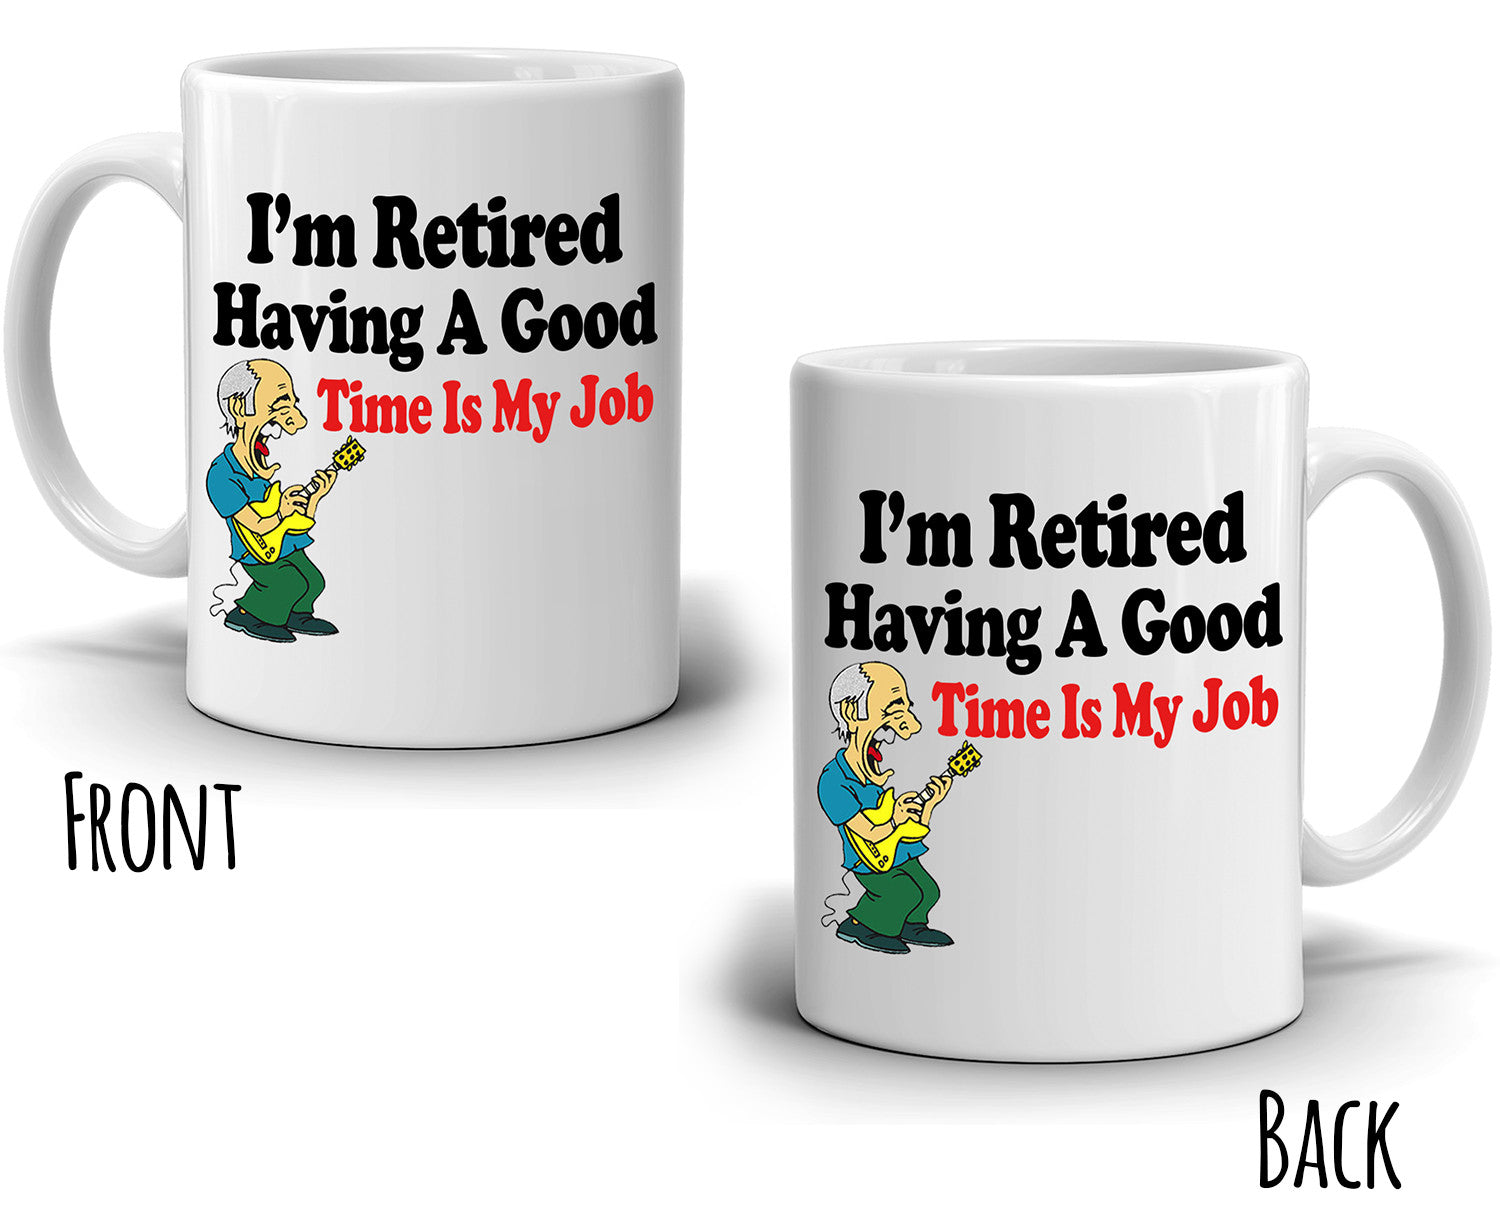 Funny Retirement Gag Gifts Mug for Retirees I'm Retired Having a Good Time is